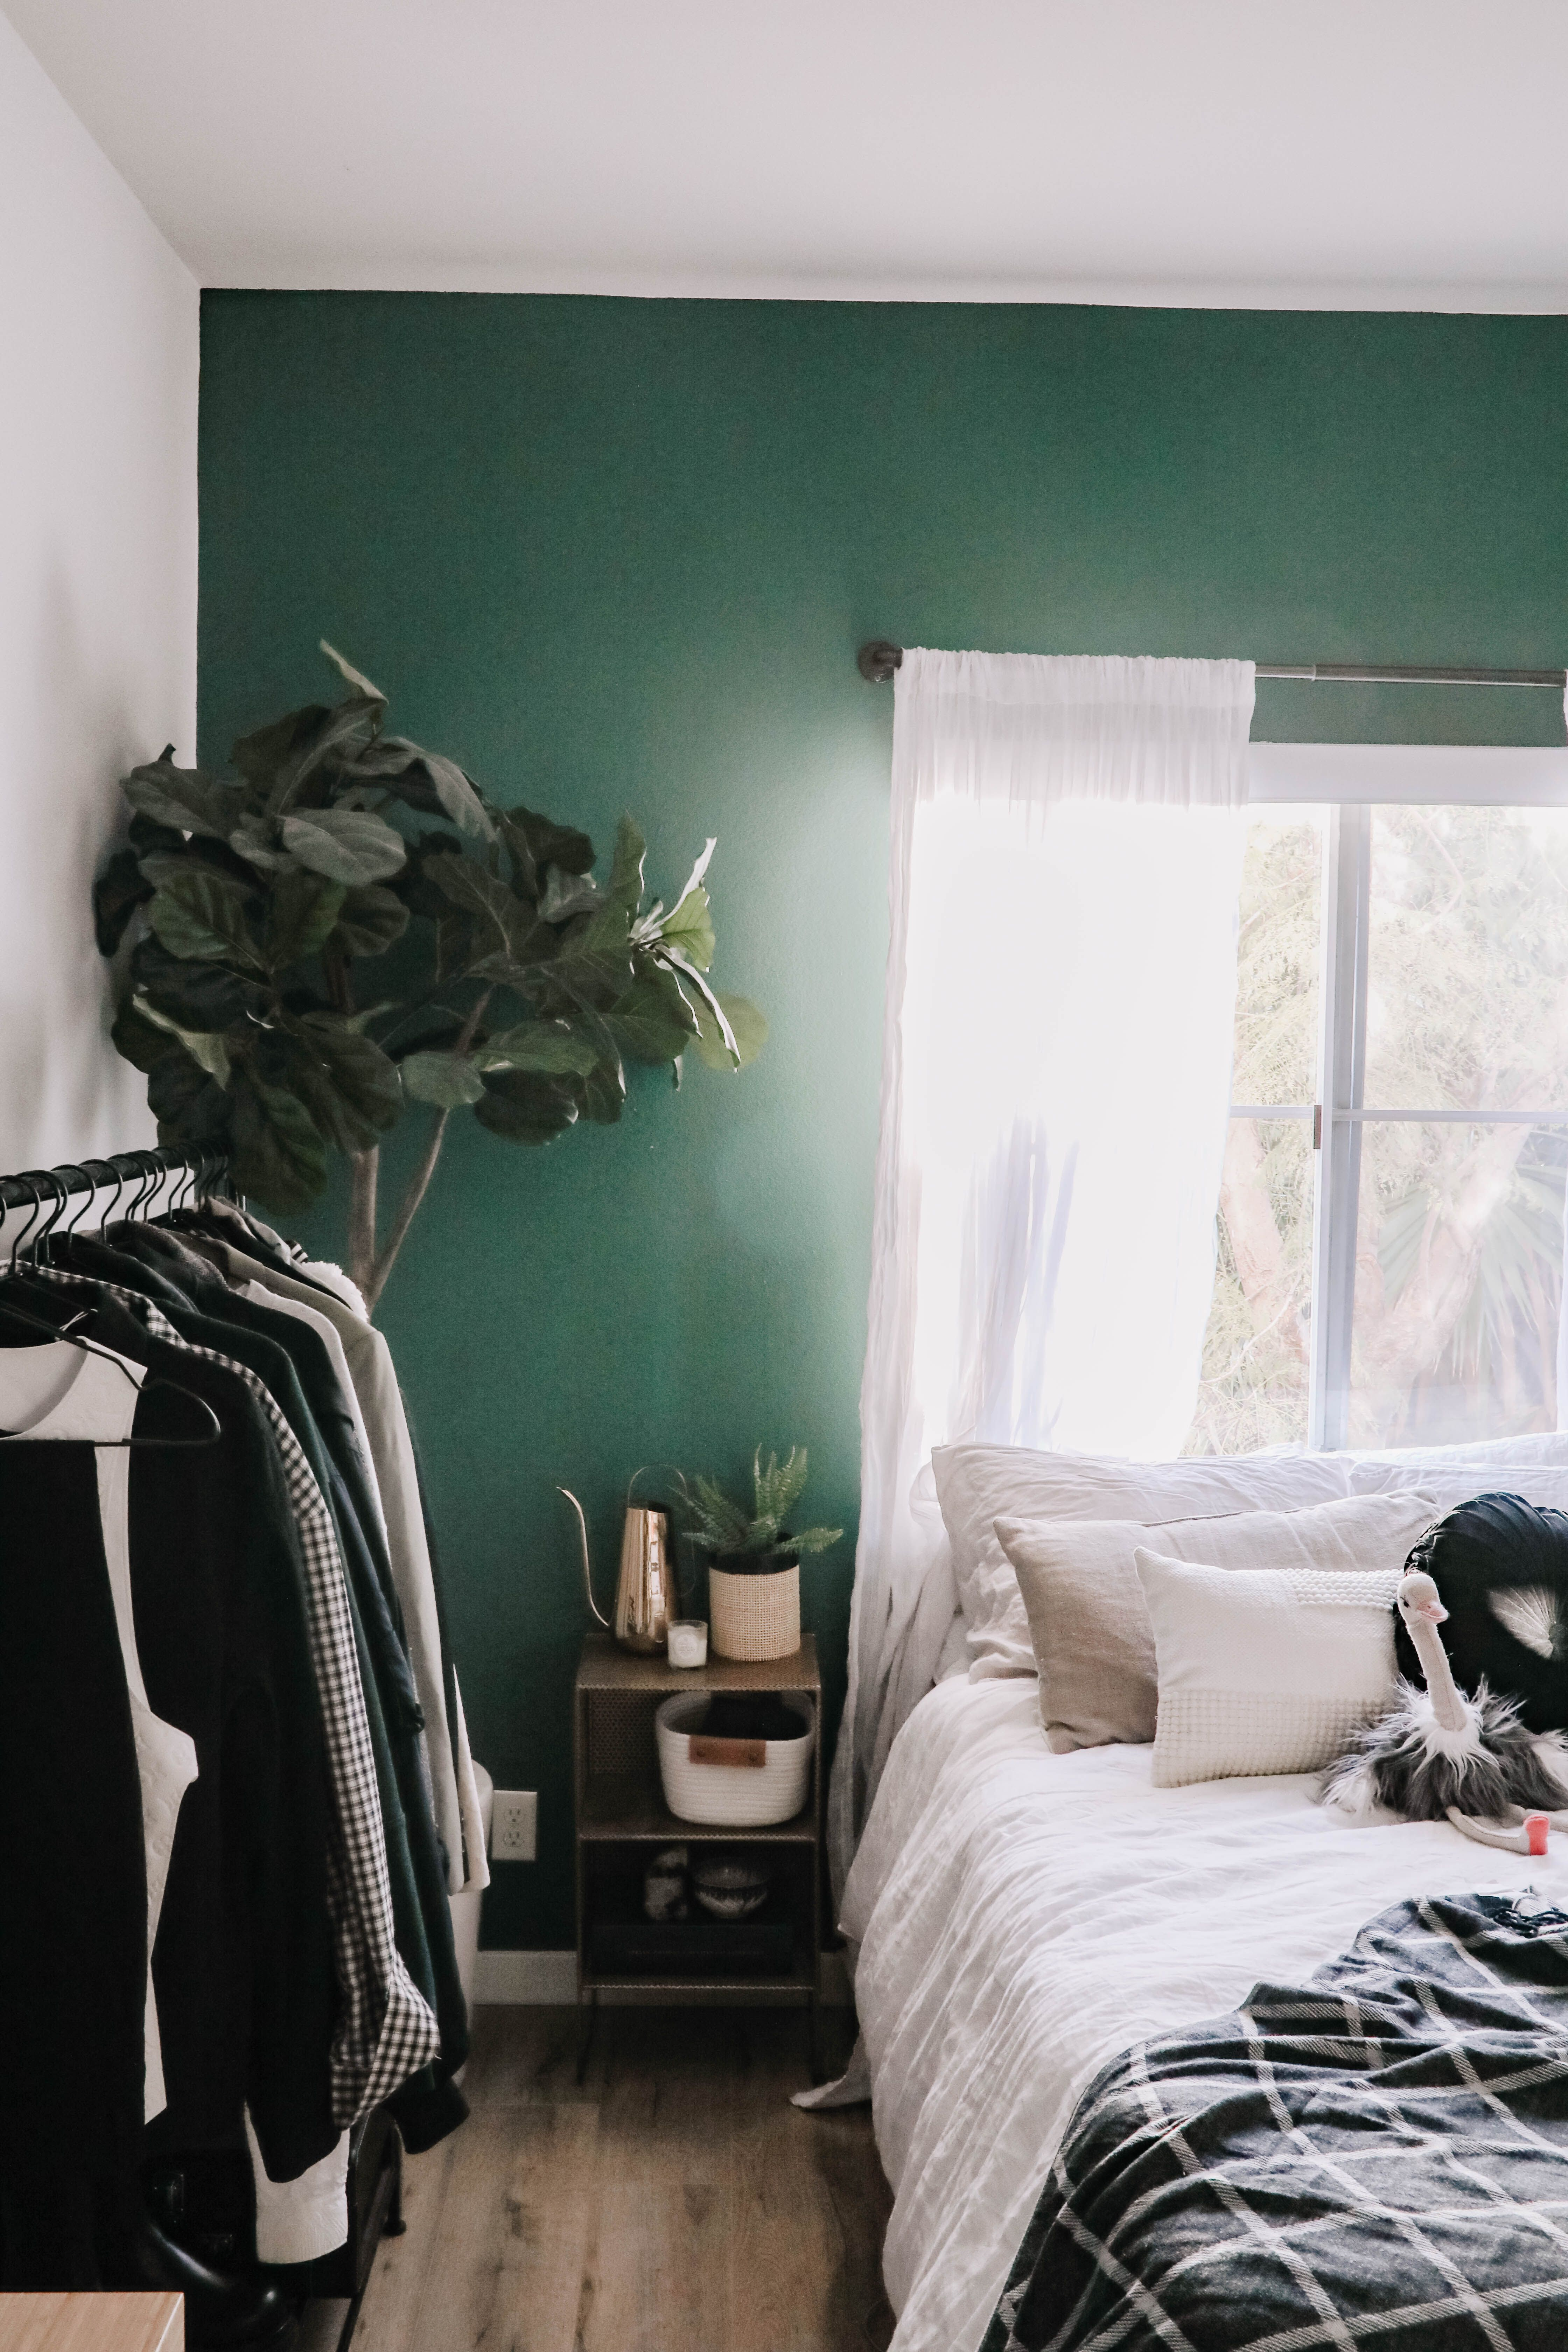 Green Accent Wall Bedroom Ideas In 2020 Green Accent Walls Accent Wall Bedroom Bedroom Wall